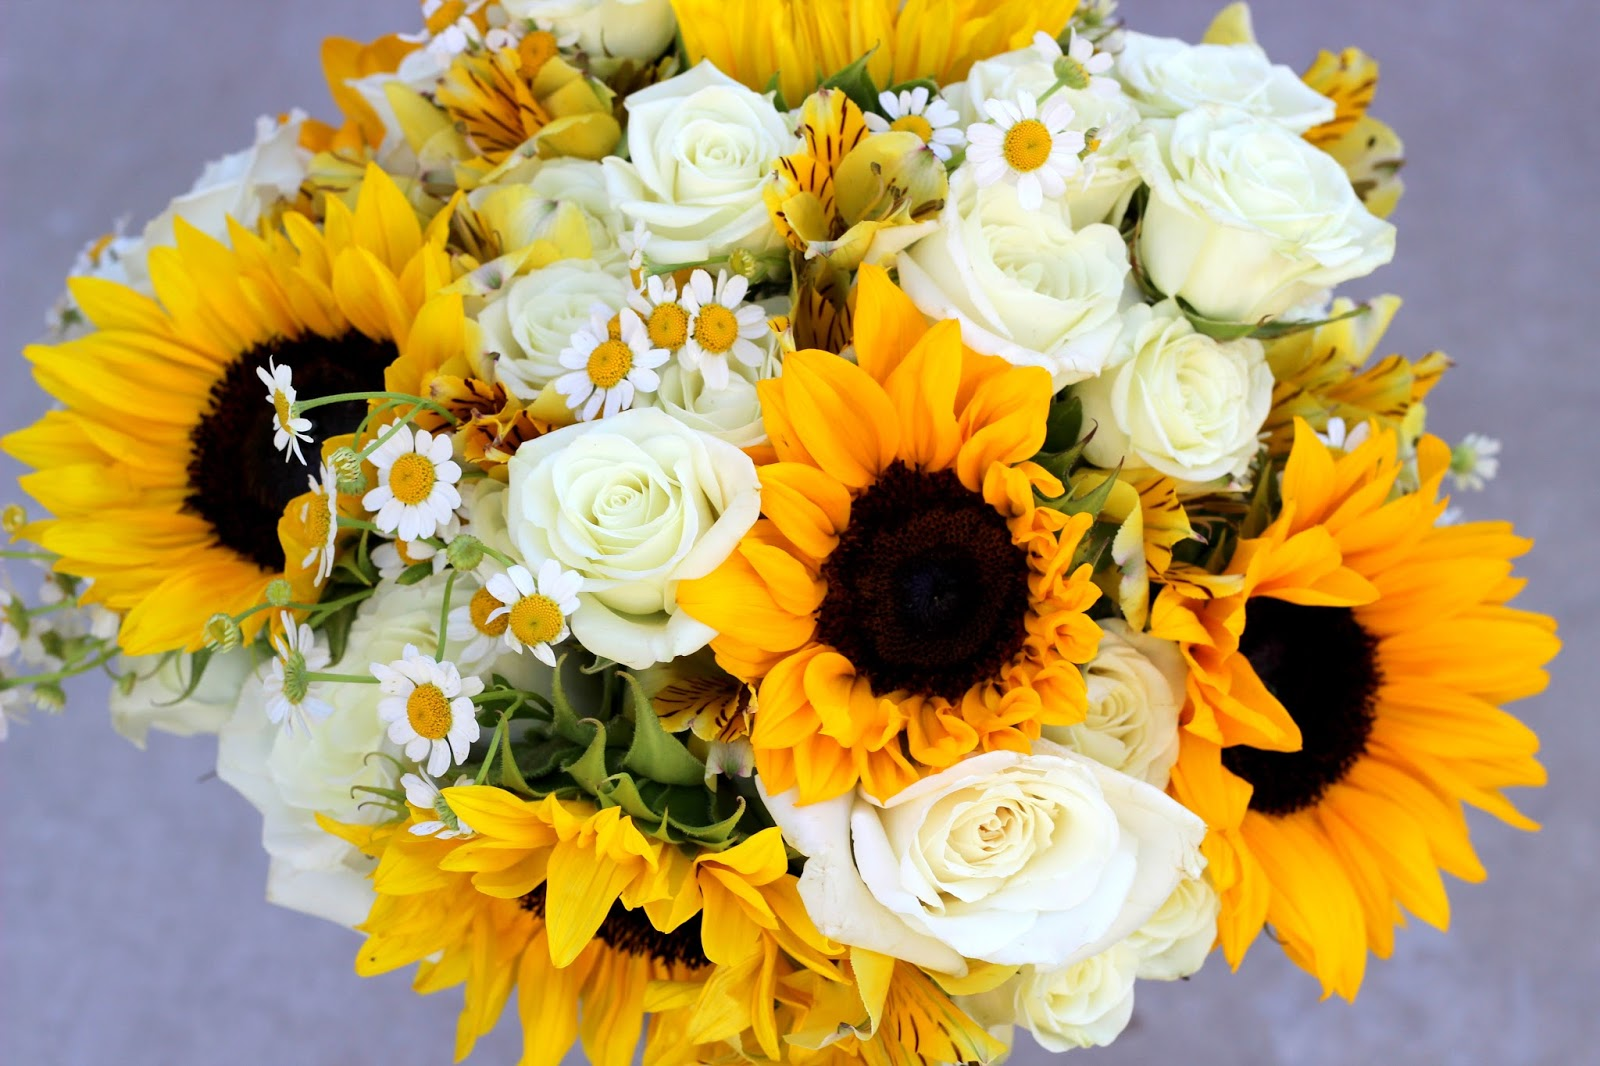 Sunflower And Pink Rose Bouquet Celebration Fla...